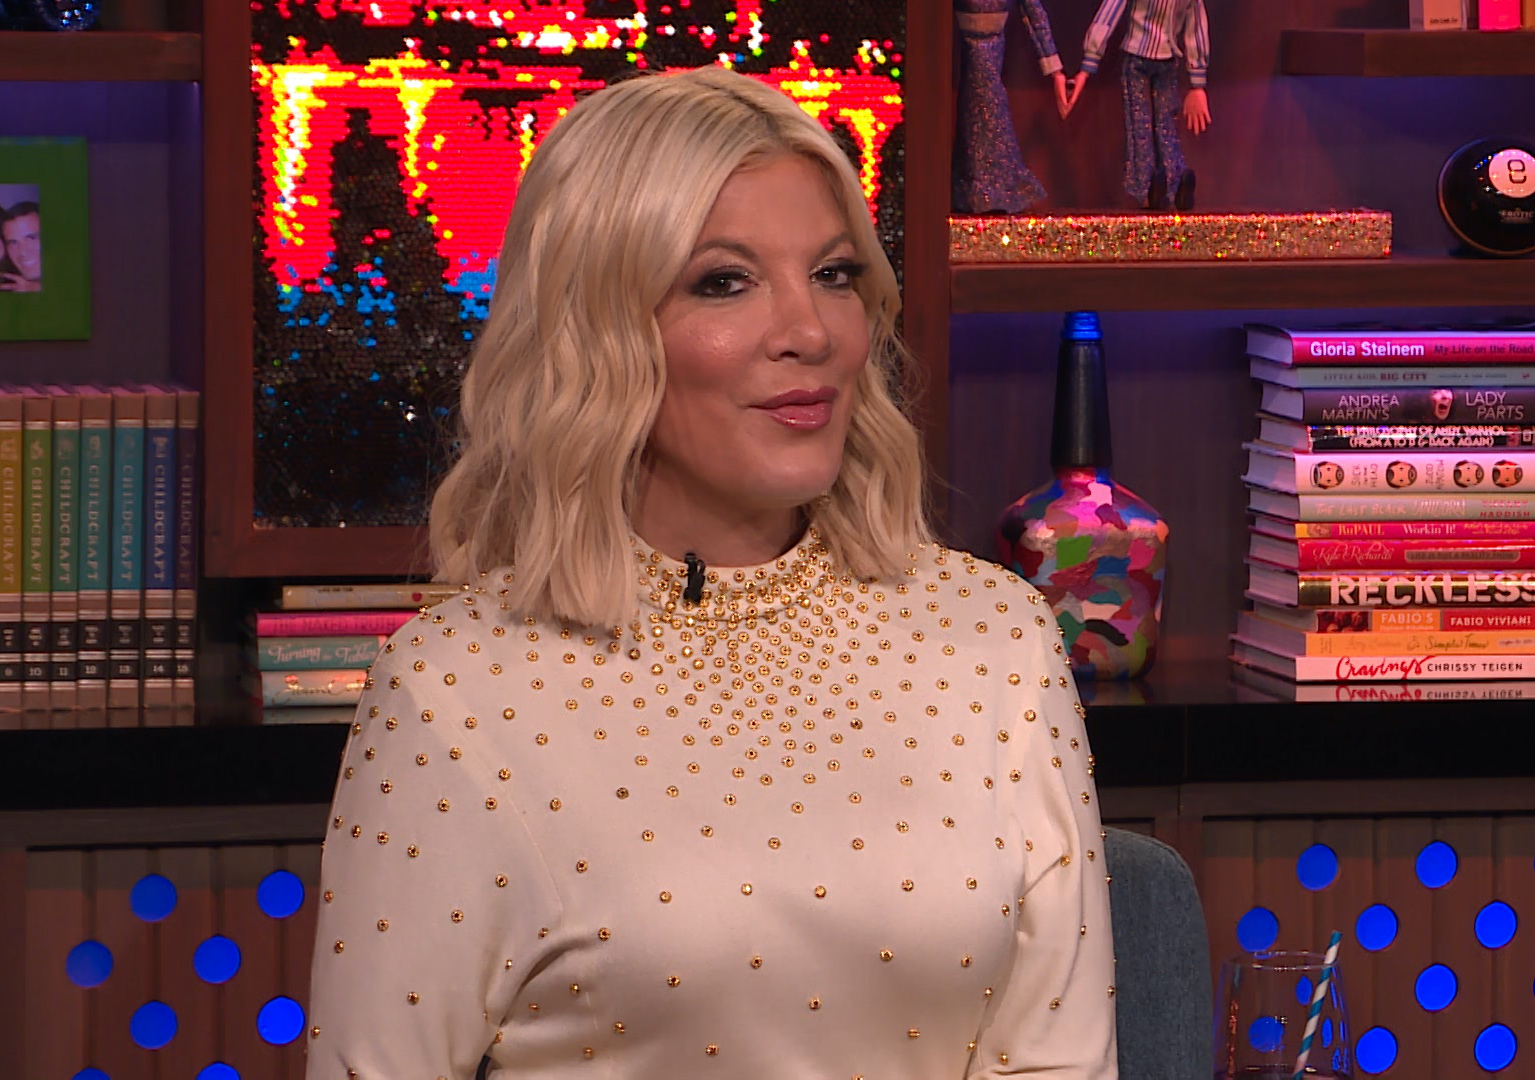 Tori Spelling, The Real Housewives of Beverly Hills, RHOBH, Bravo